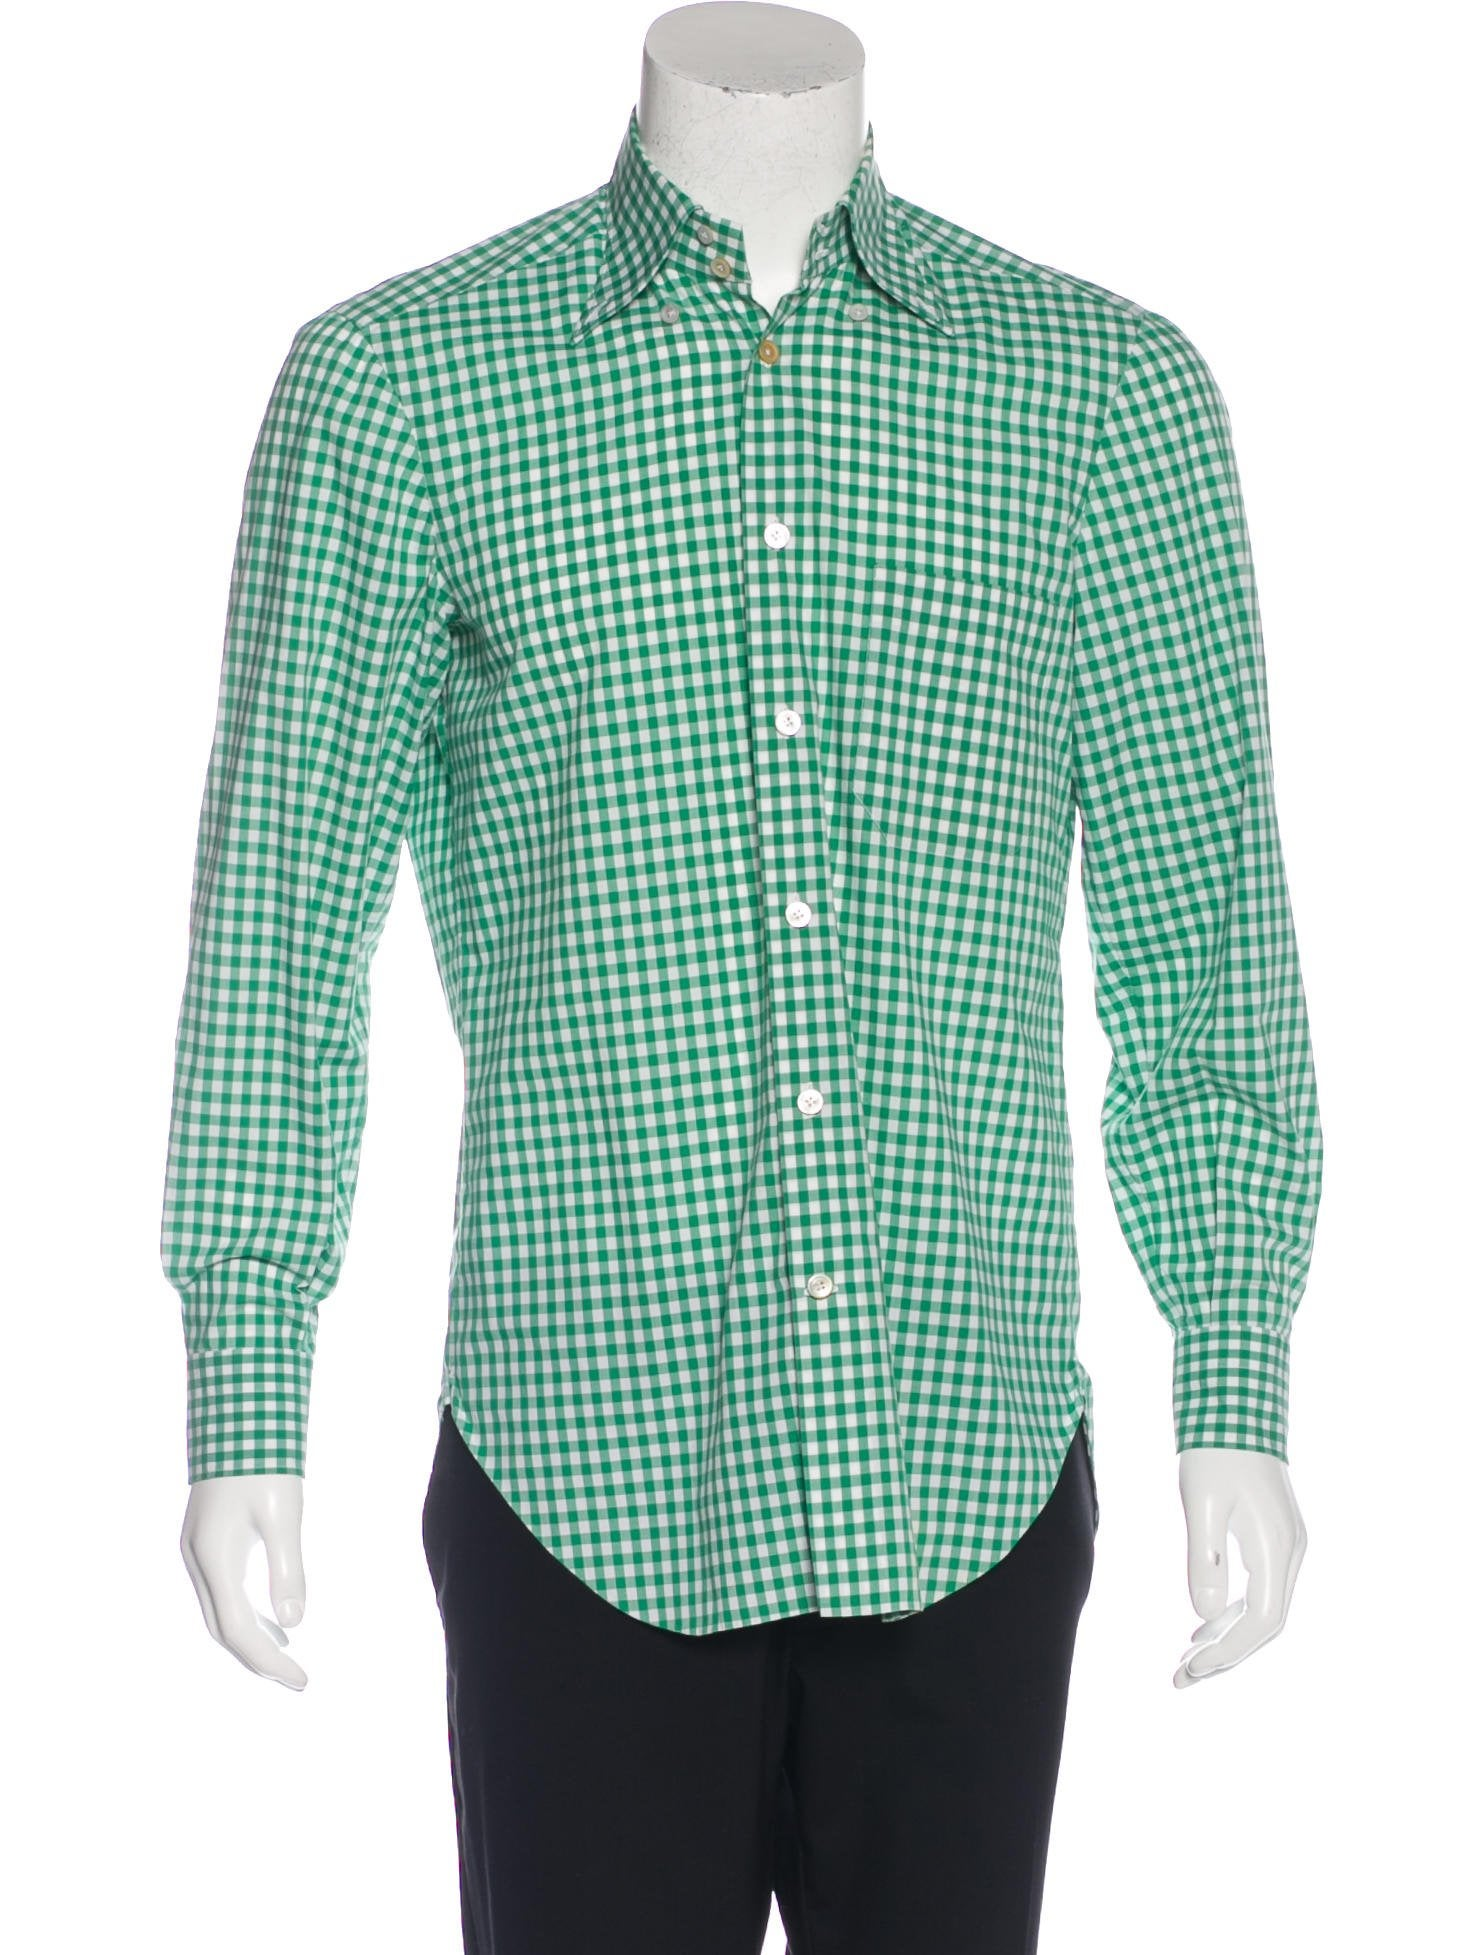 Kiton gingham button up shirt clothing kit21780 the for Mens green gingham dress shirt